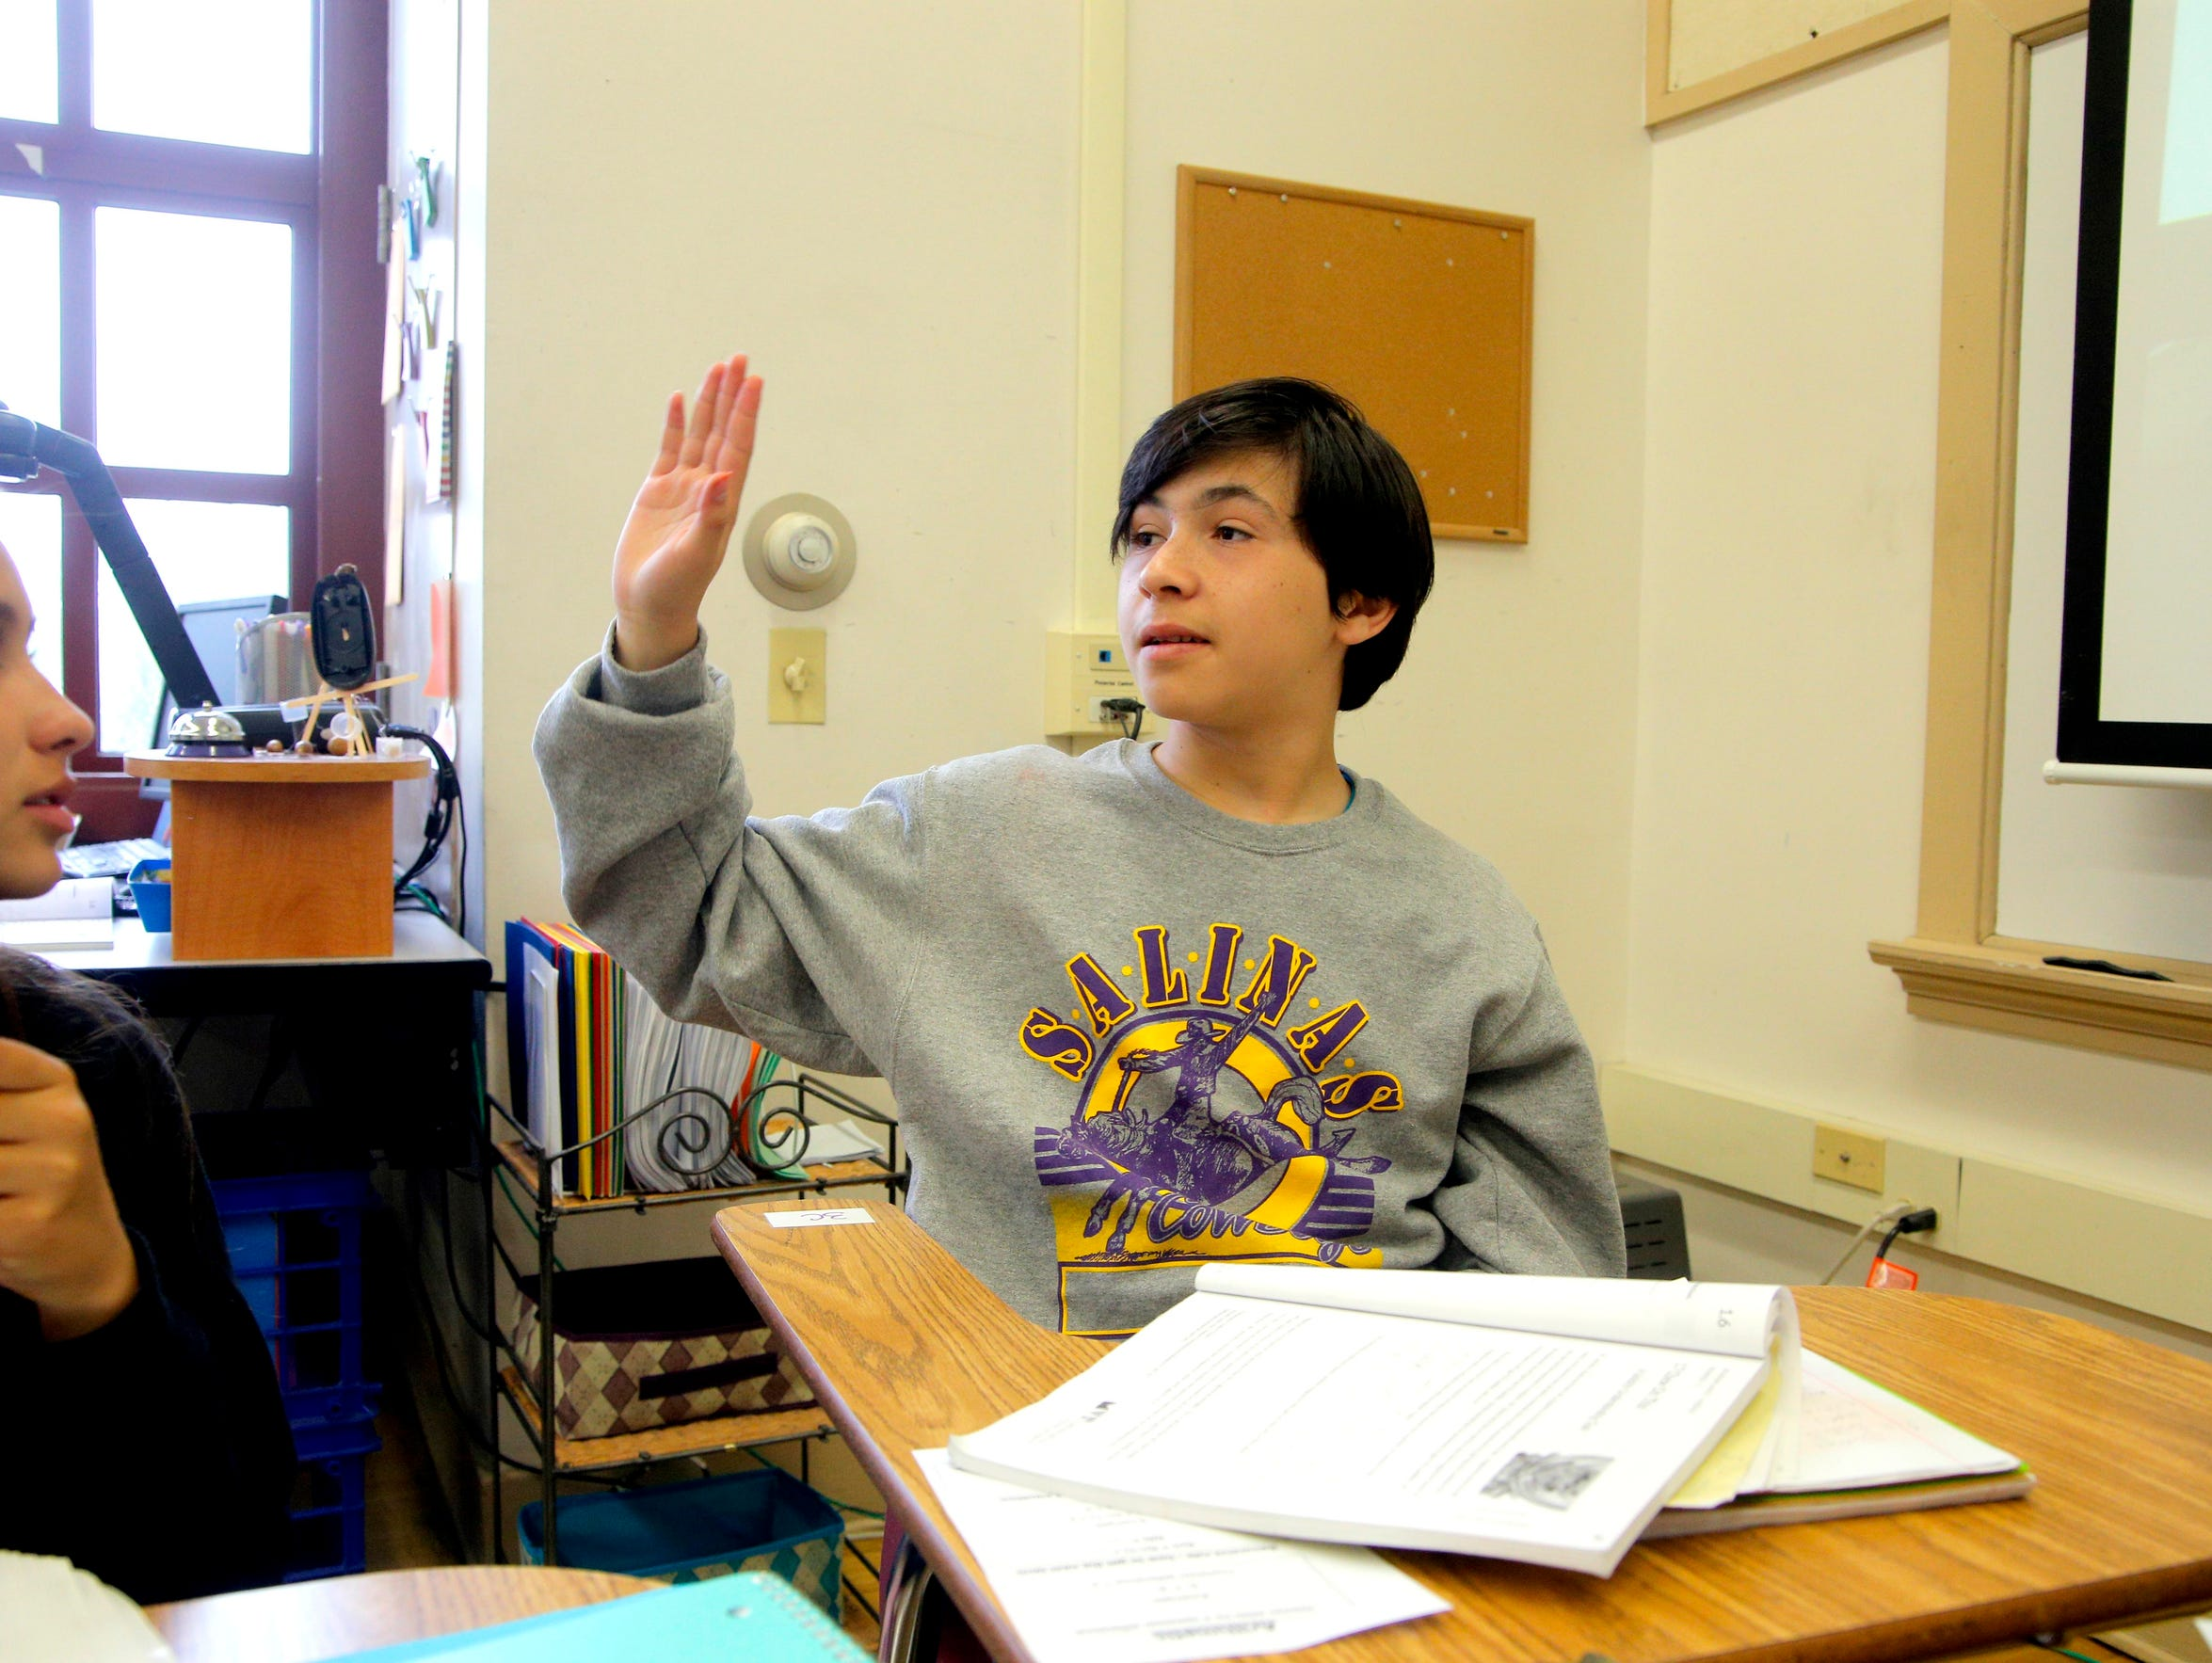 Jose Anzaldo raises his hand during math class at Salinas